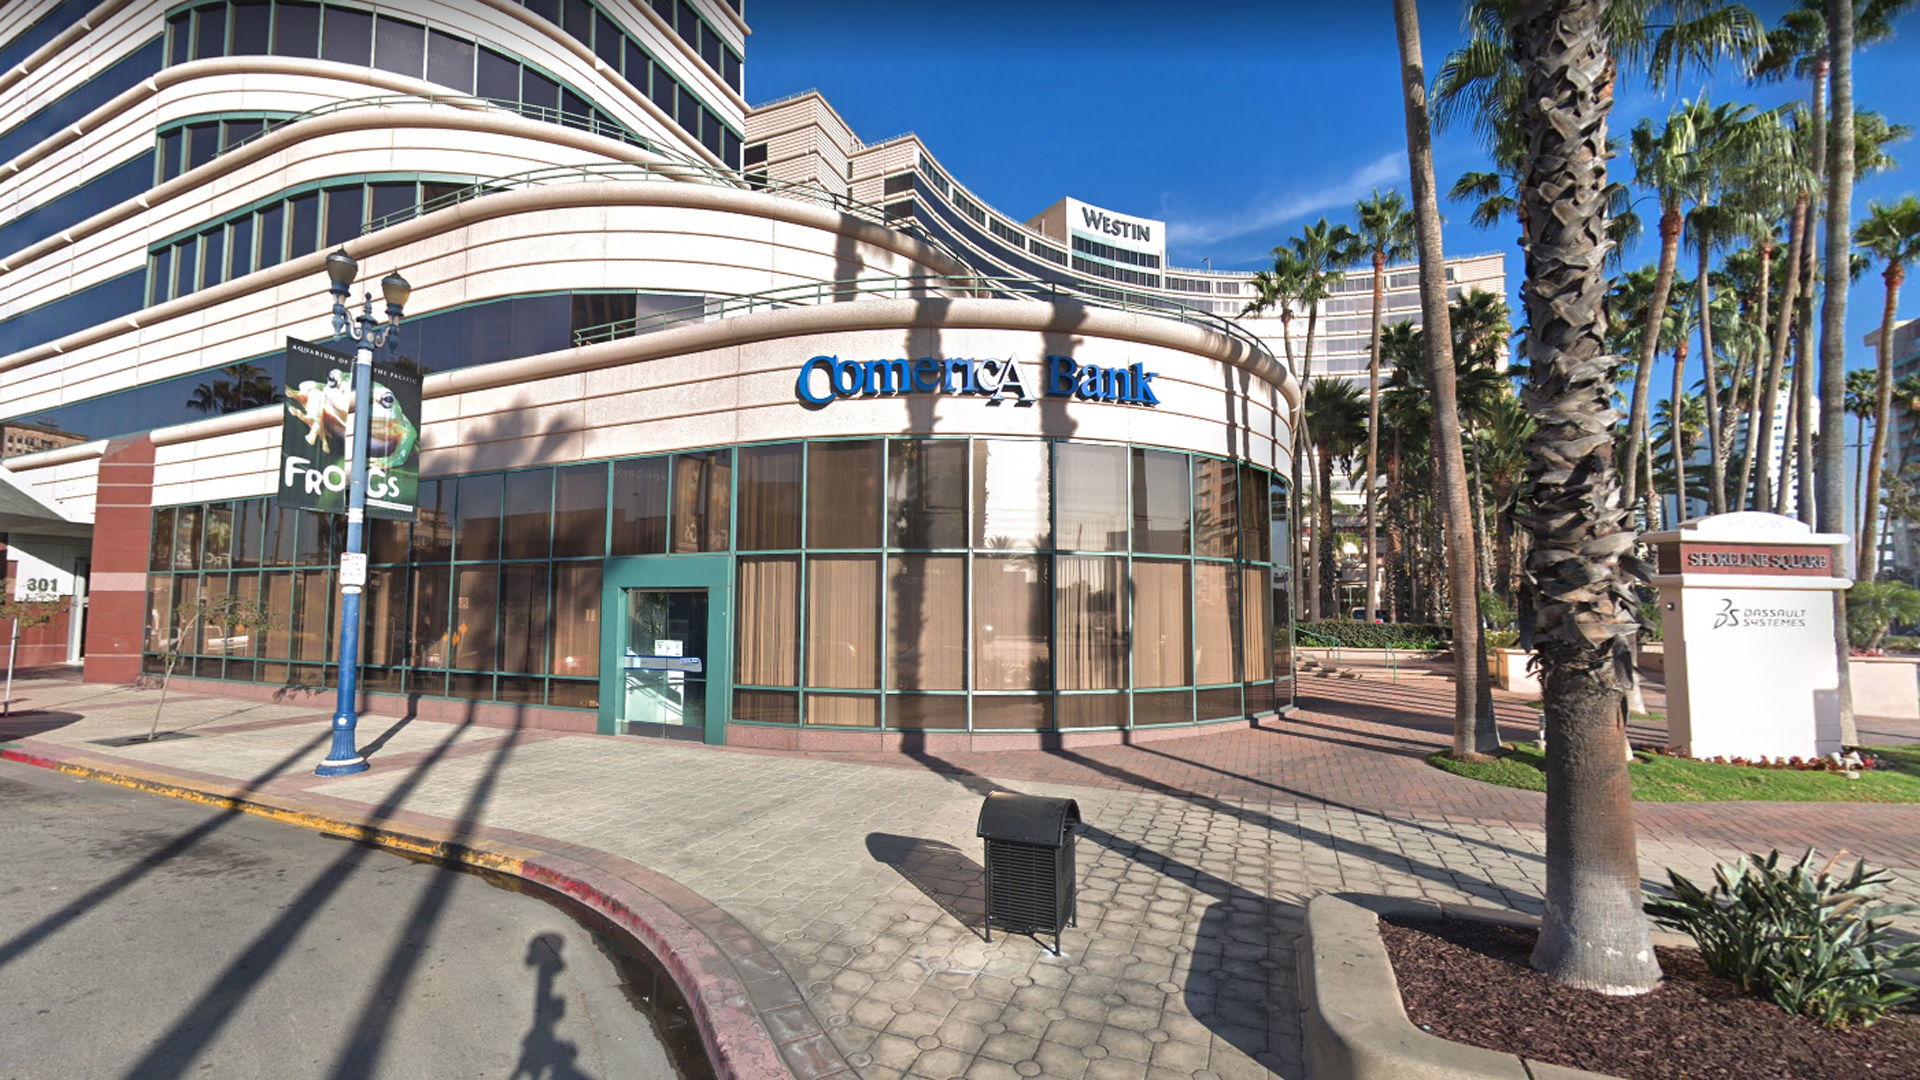 Comerica Bank, 301 East Ocean Ave. in Long Beach, as viewed in a Google Street View image in December of 2017.